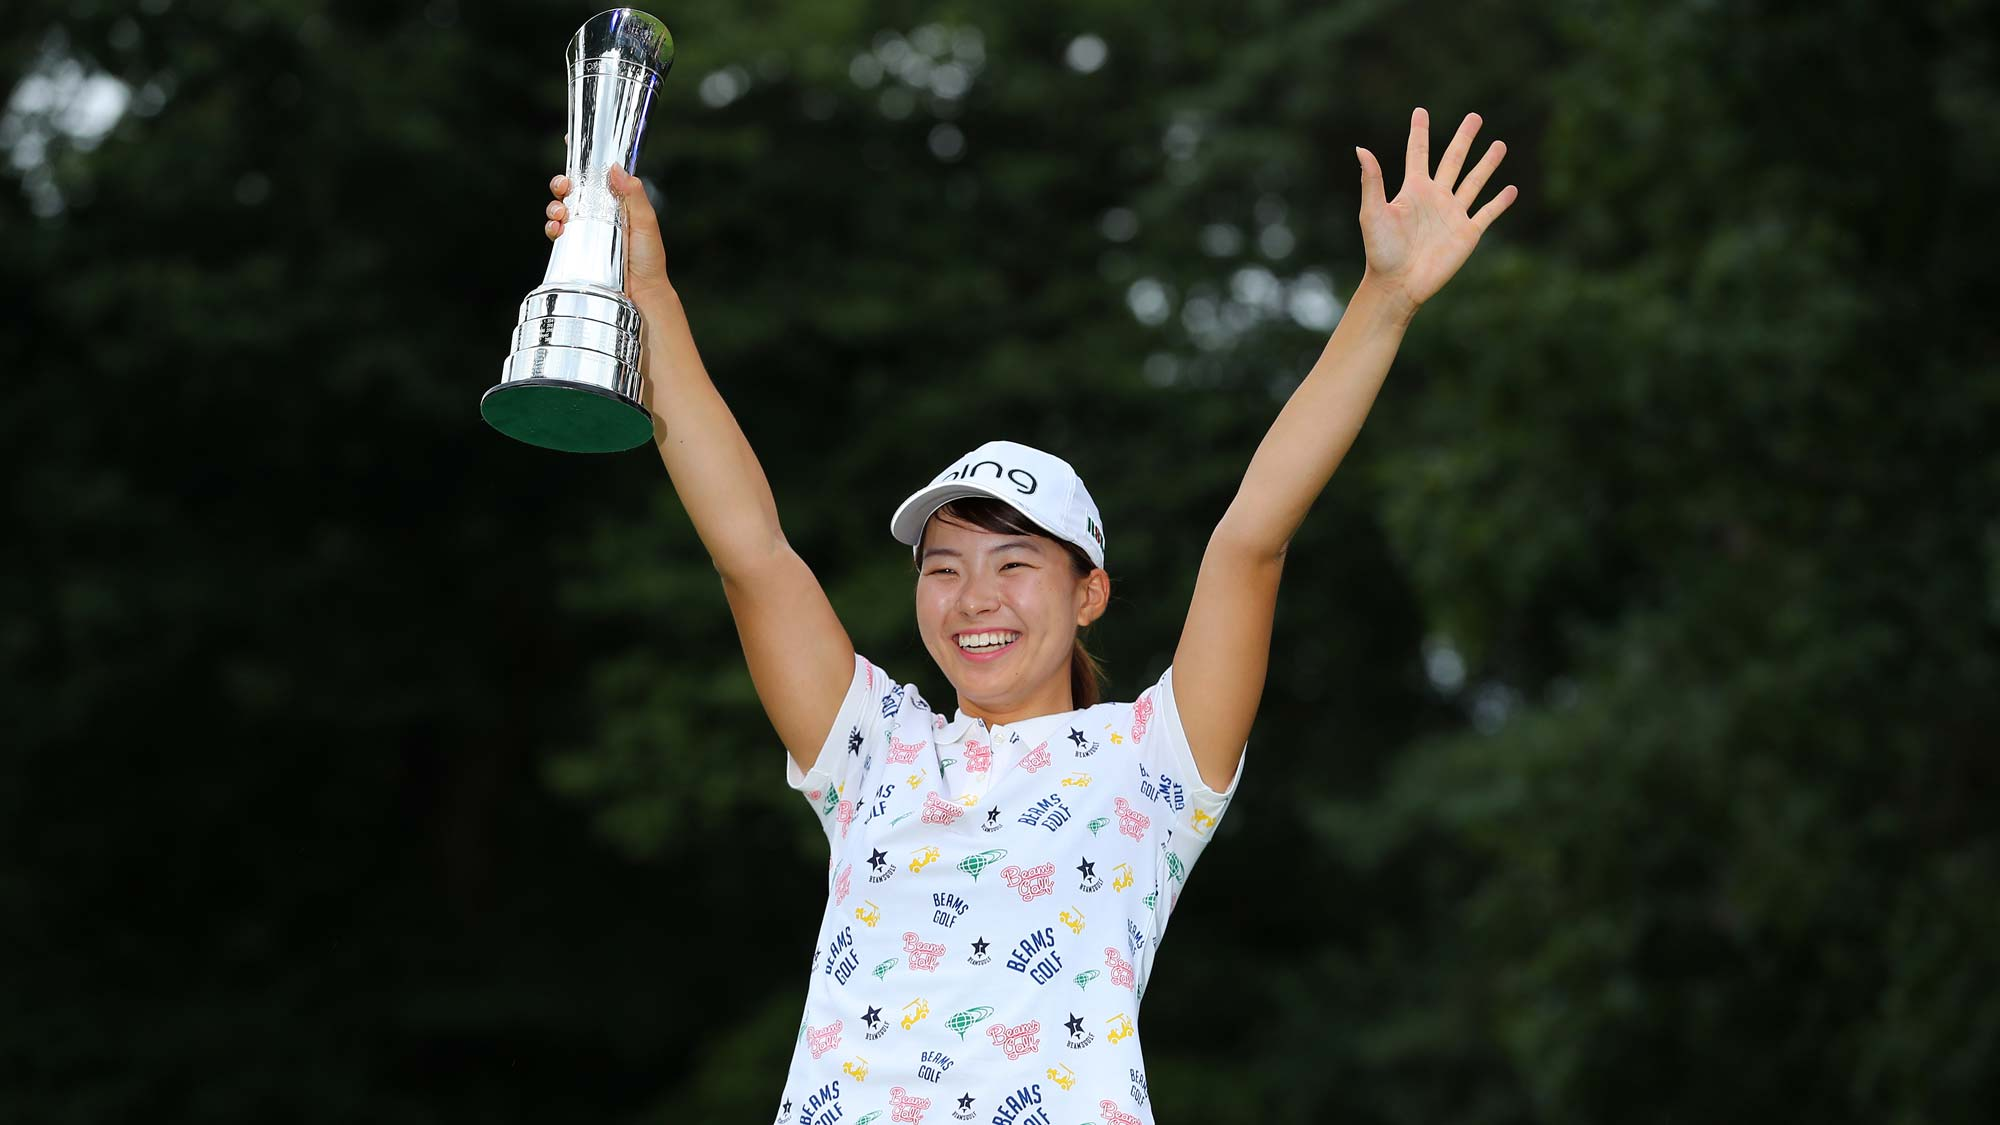 Aig Extends Support Of The Womens Open Lpga Ladies Professional Golf Association